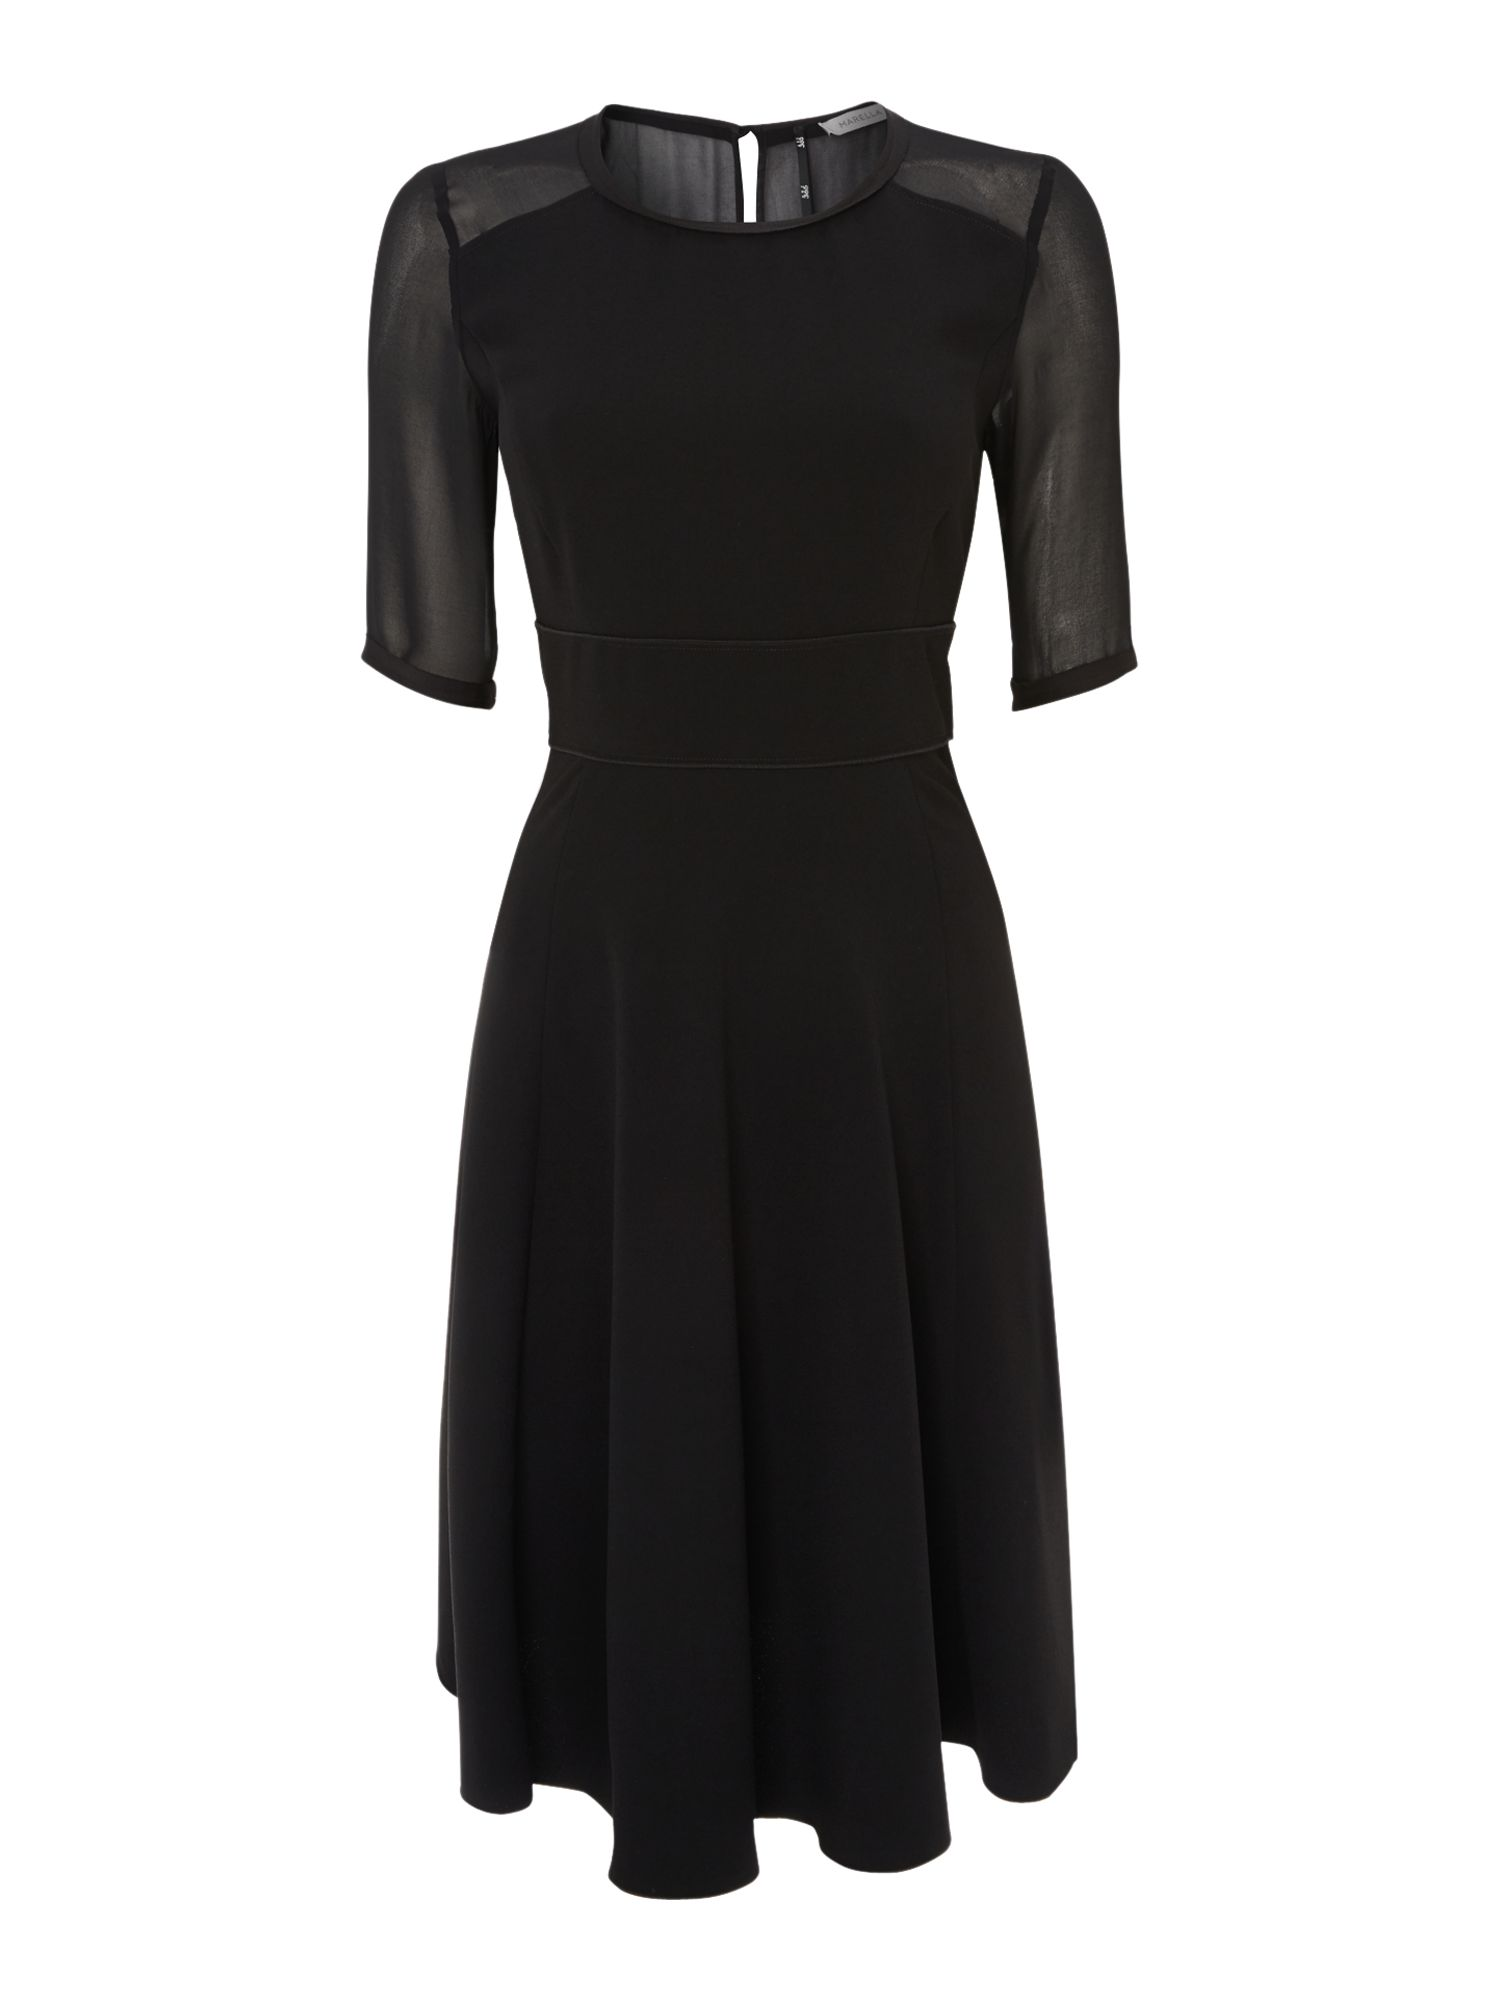 Perseo dress with sheer sleeve detail